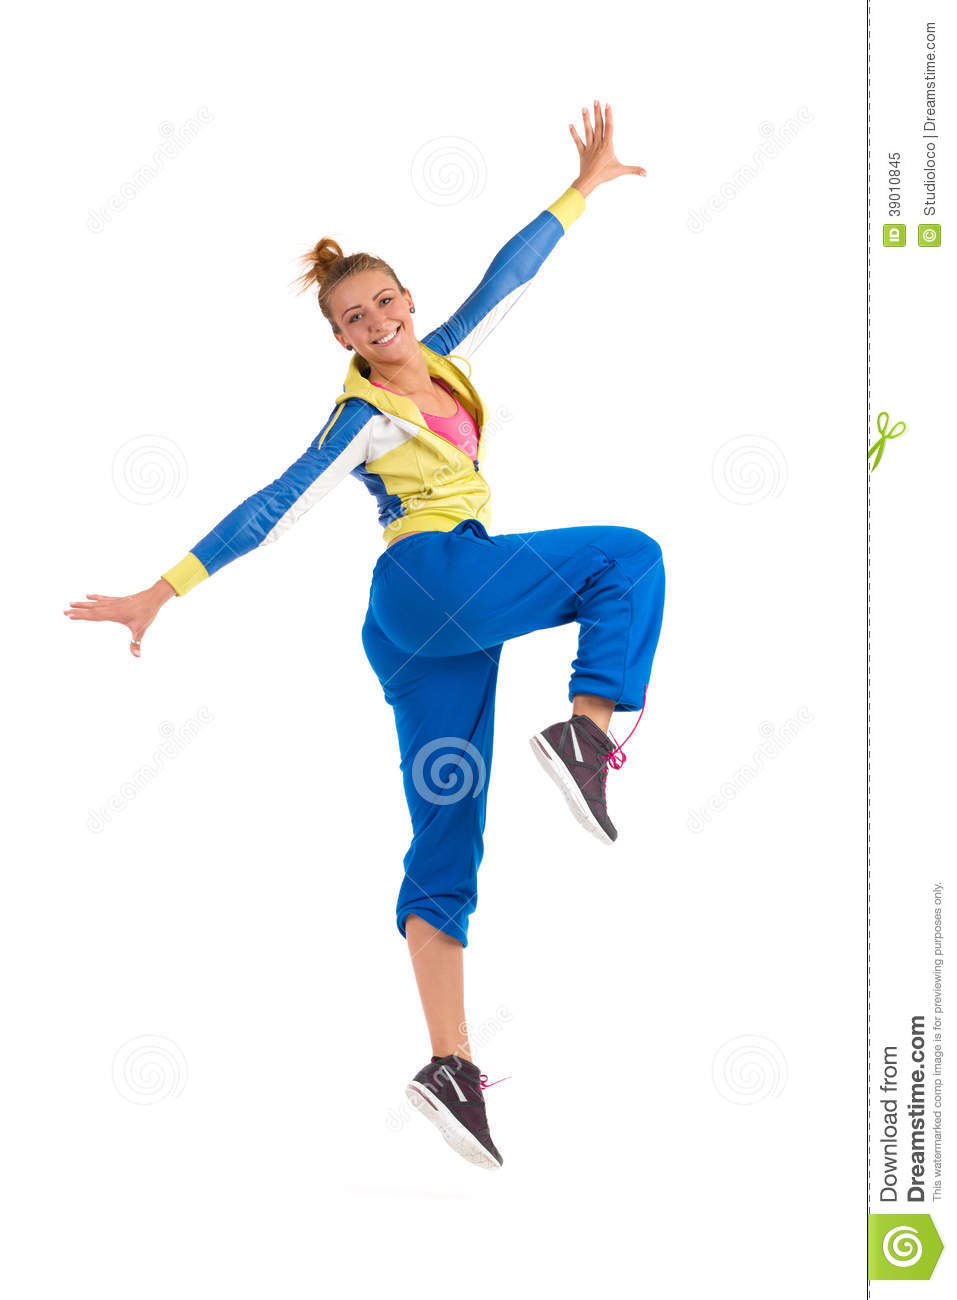 Smiling Zumba Instructor Dancing Stock Photo - Image: 39010845